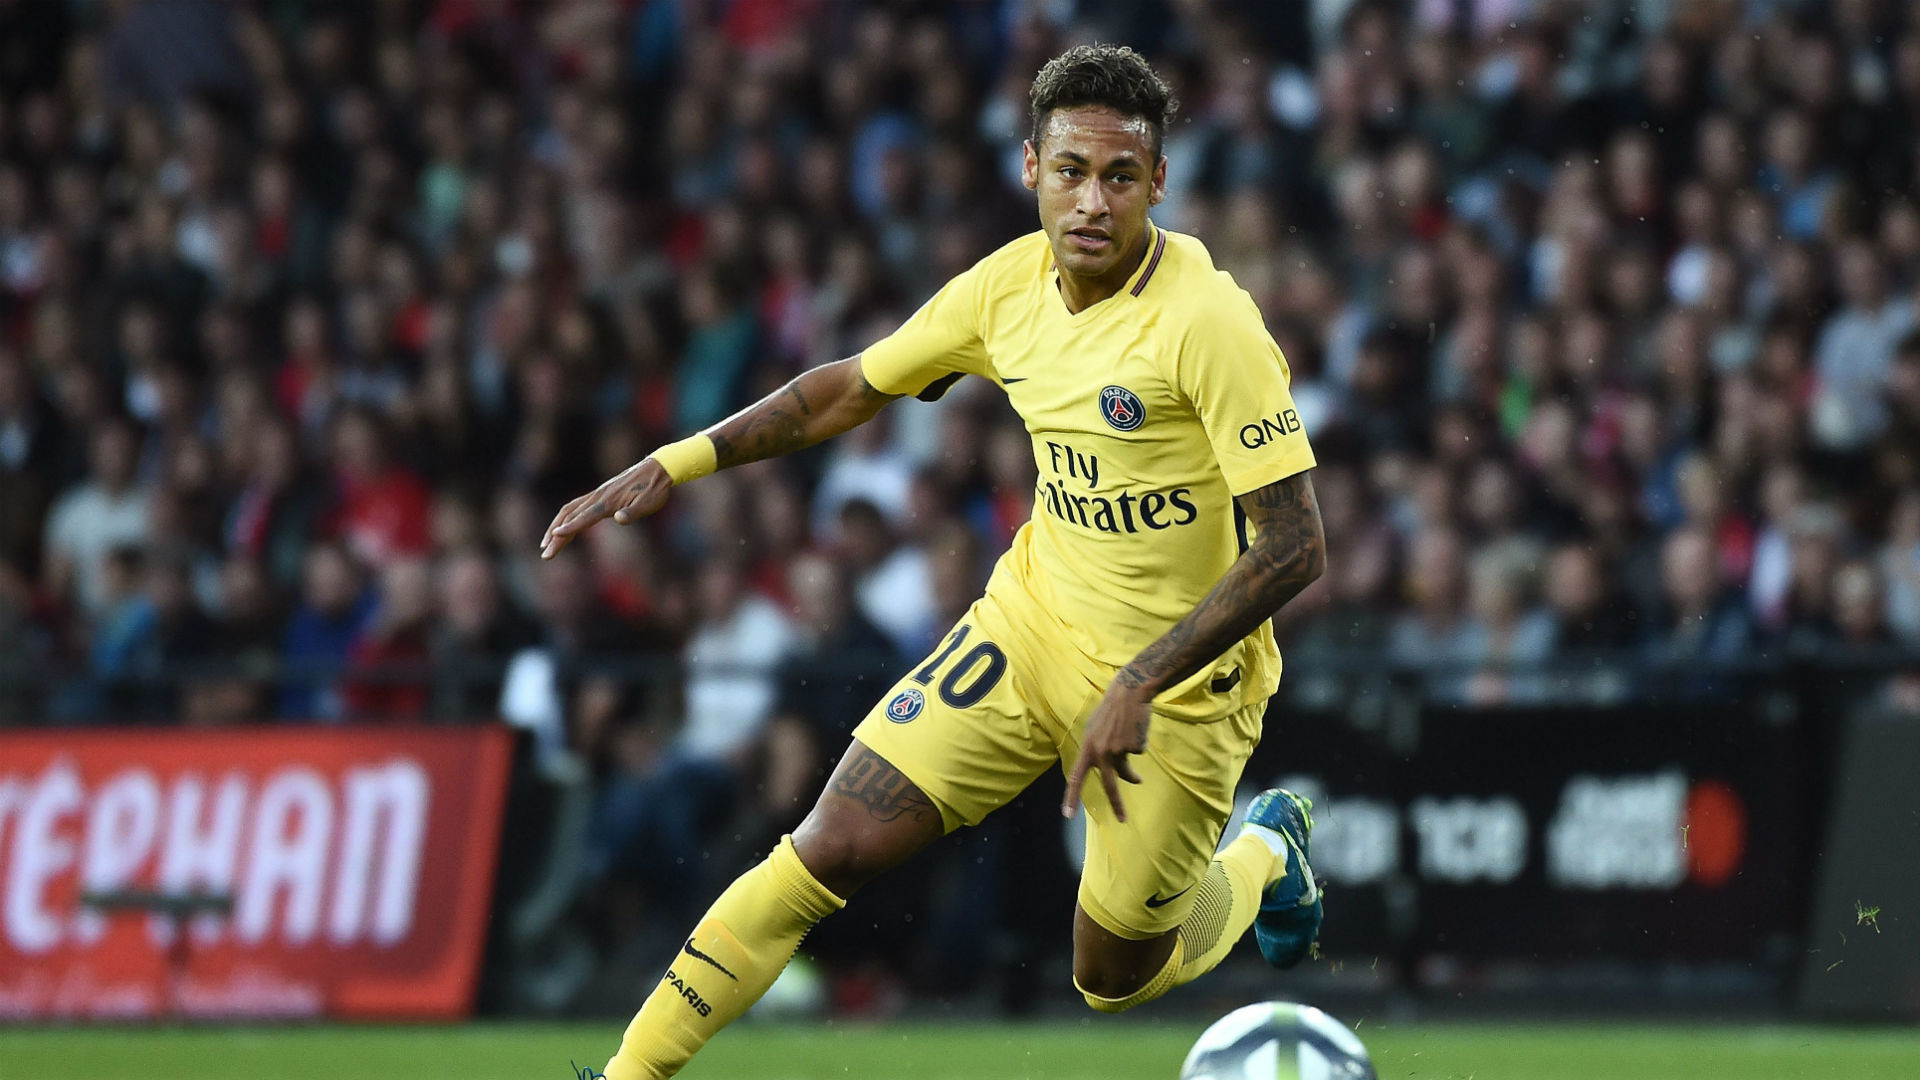 Neymar stars on winning PSG debut at Guingamp